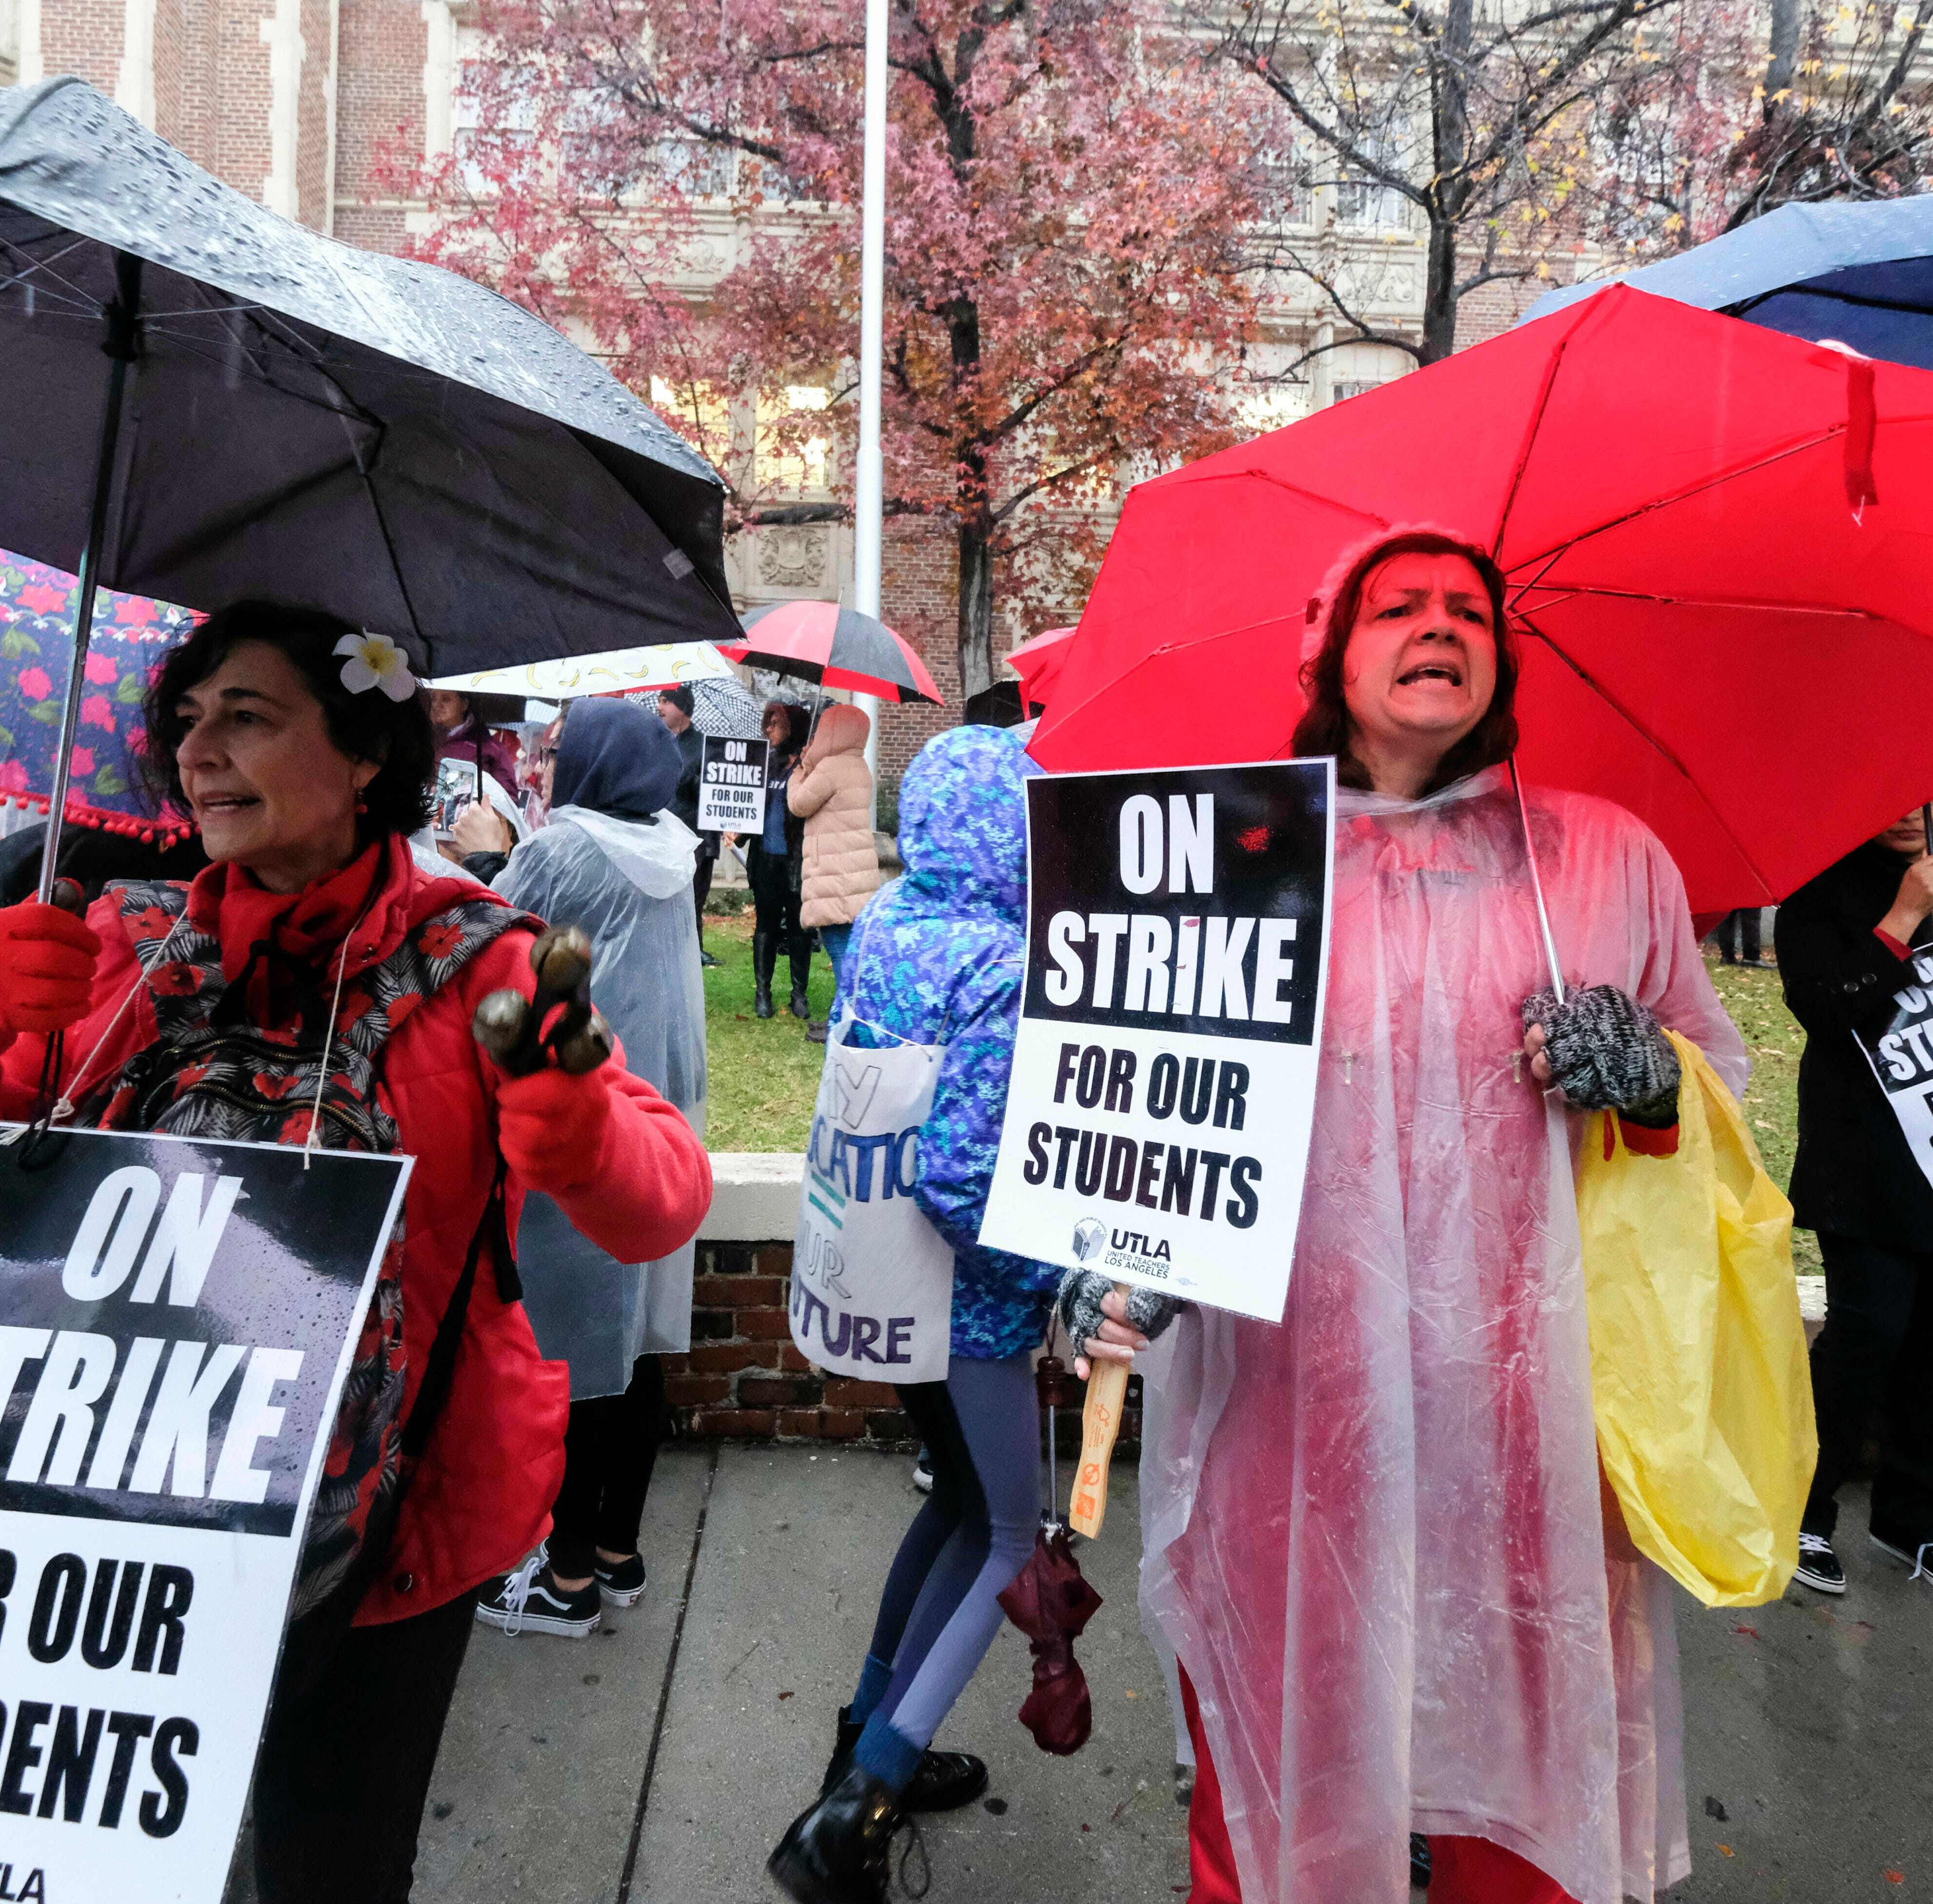 30,000 teachers are striking in LA. Here's what Hoosier teachers have to say.